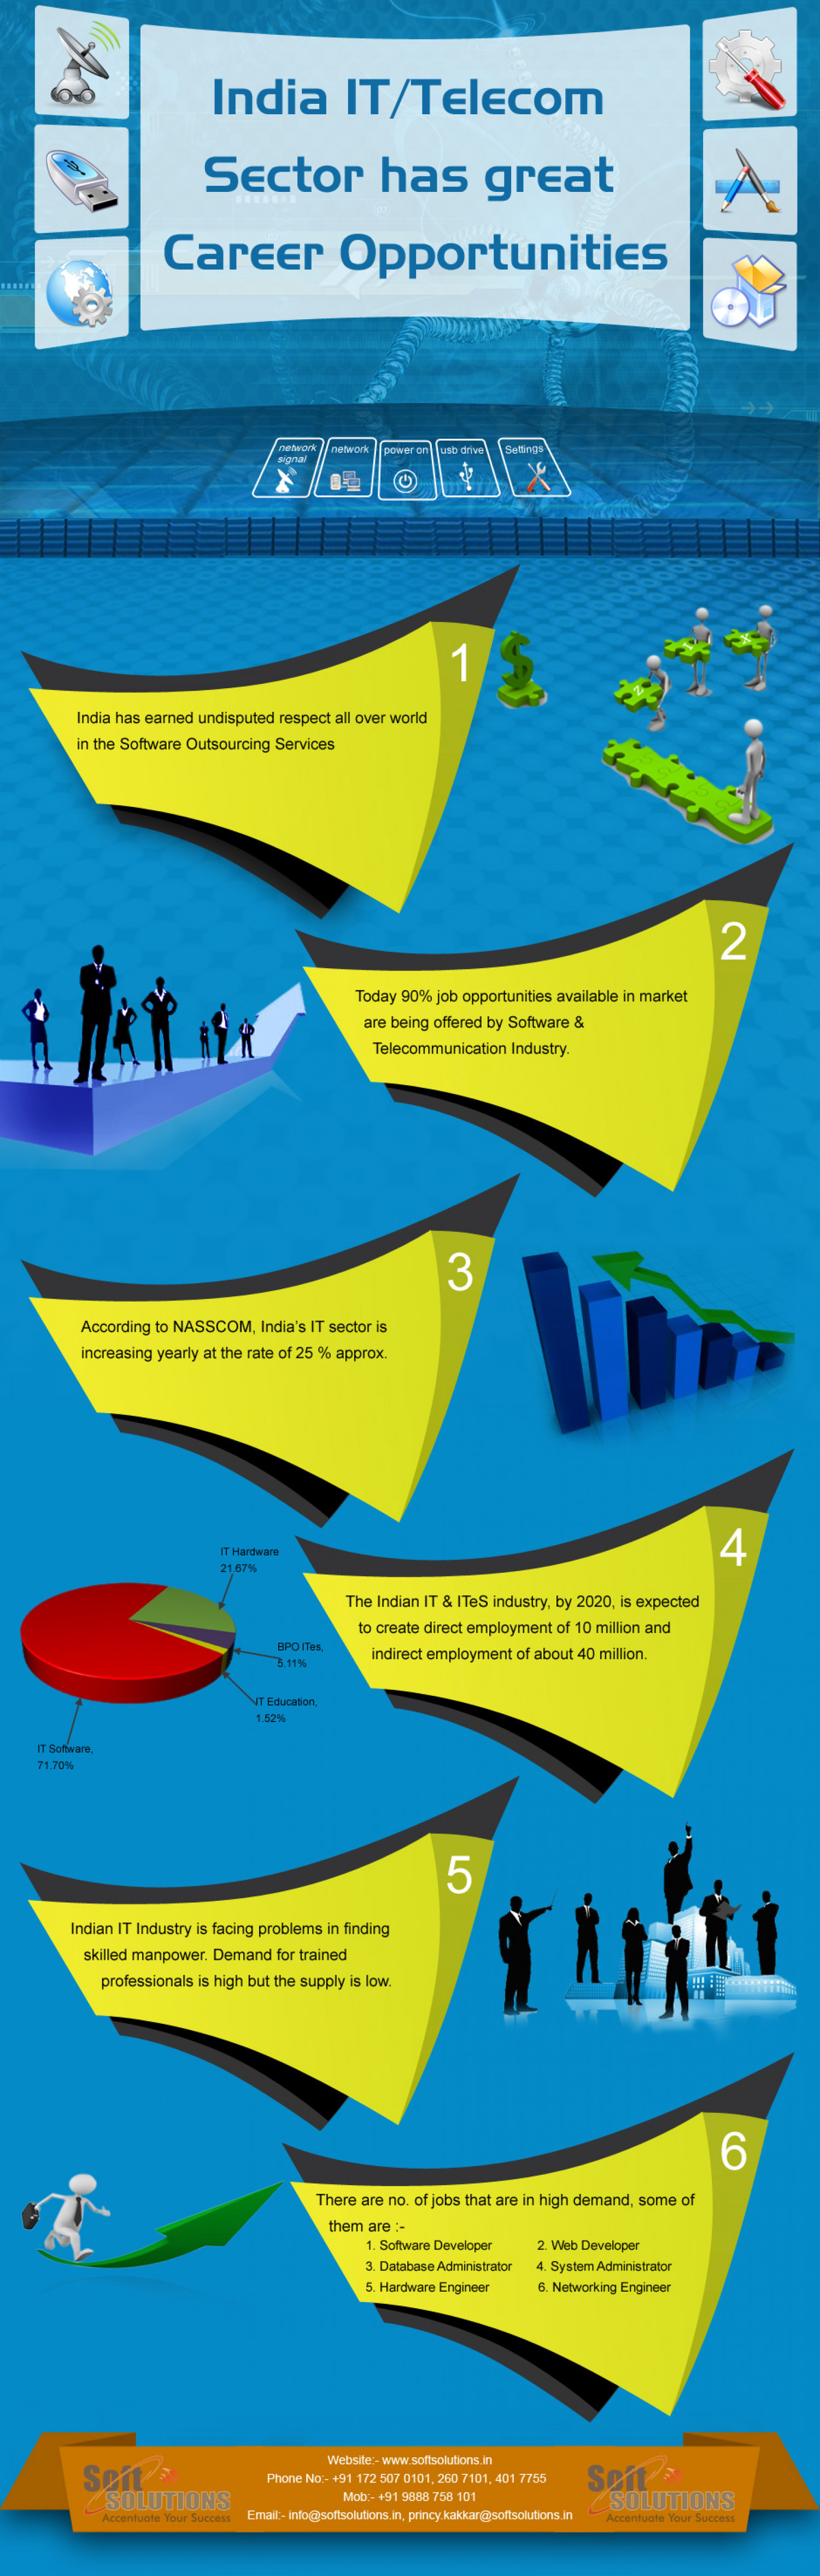 Career Opportunities in IT/Telecom Sector Infographic